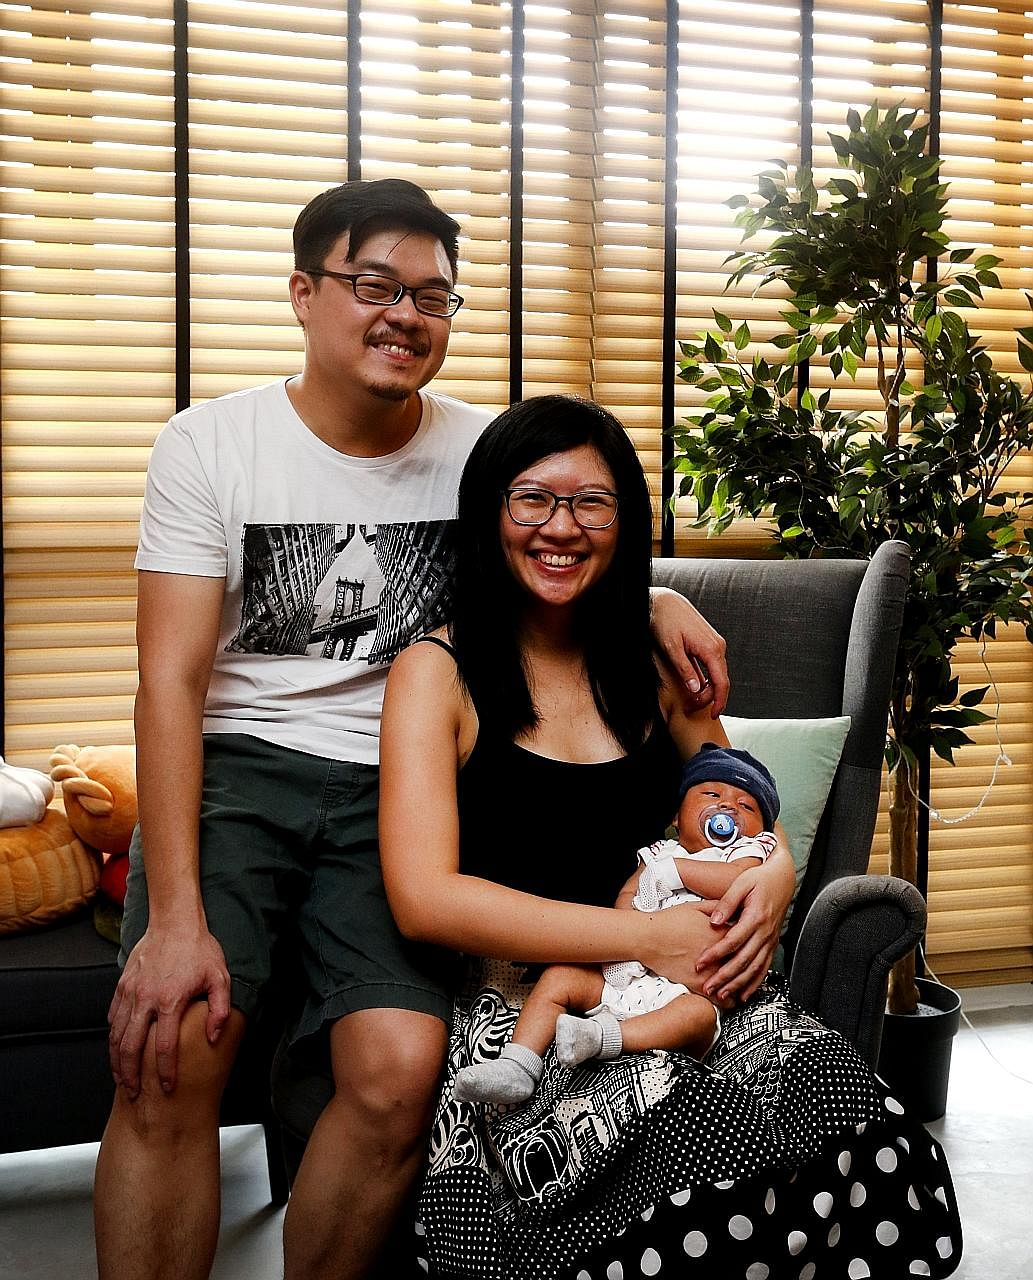 Upcycled wine crates are used as shelves in the living room, especially for the toy collections of home owners Marcus Wong and Gayle Tan (above, with their son, Logan Finn).